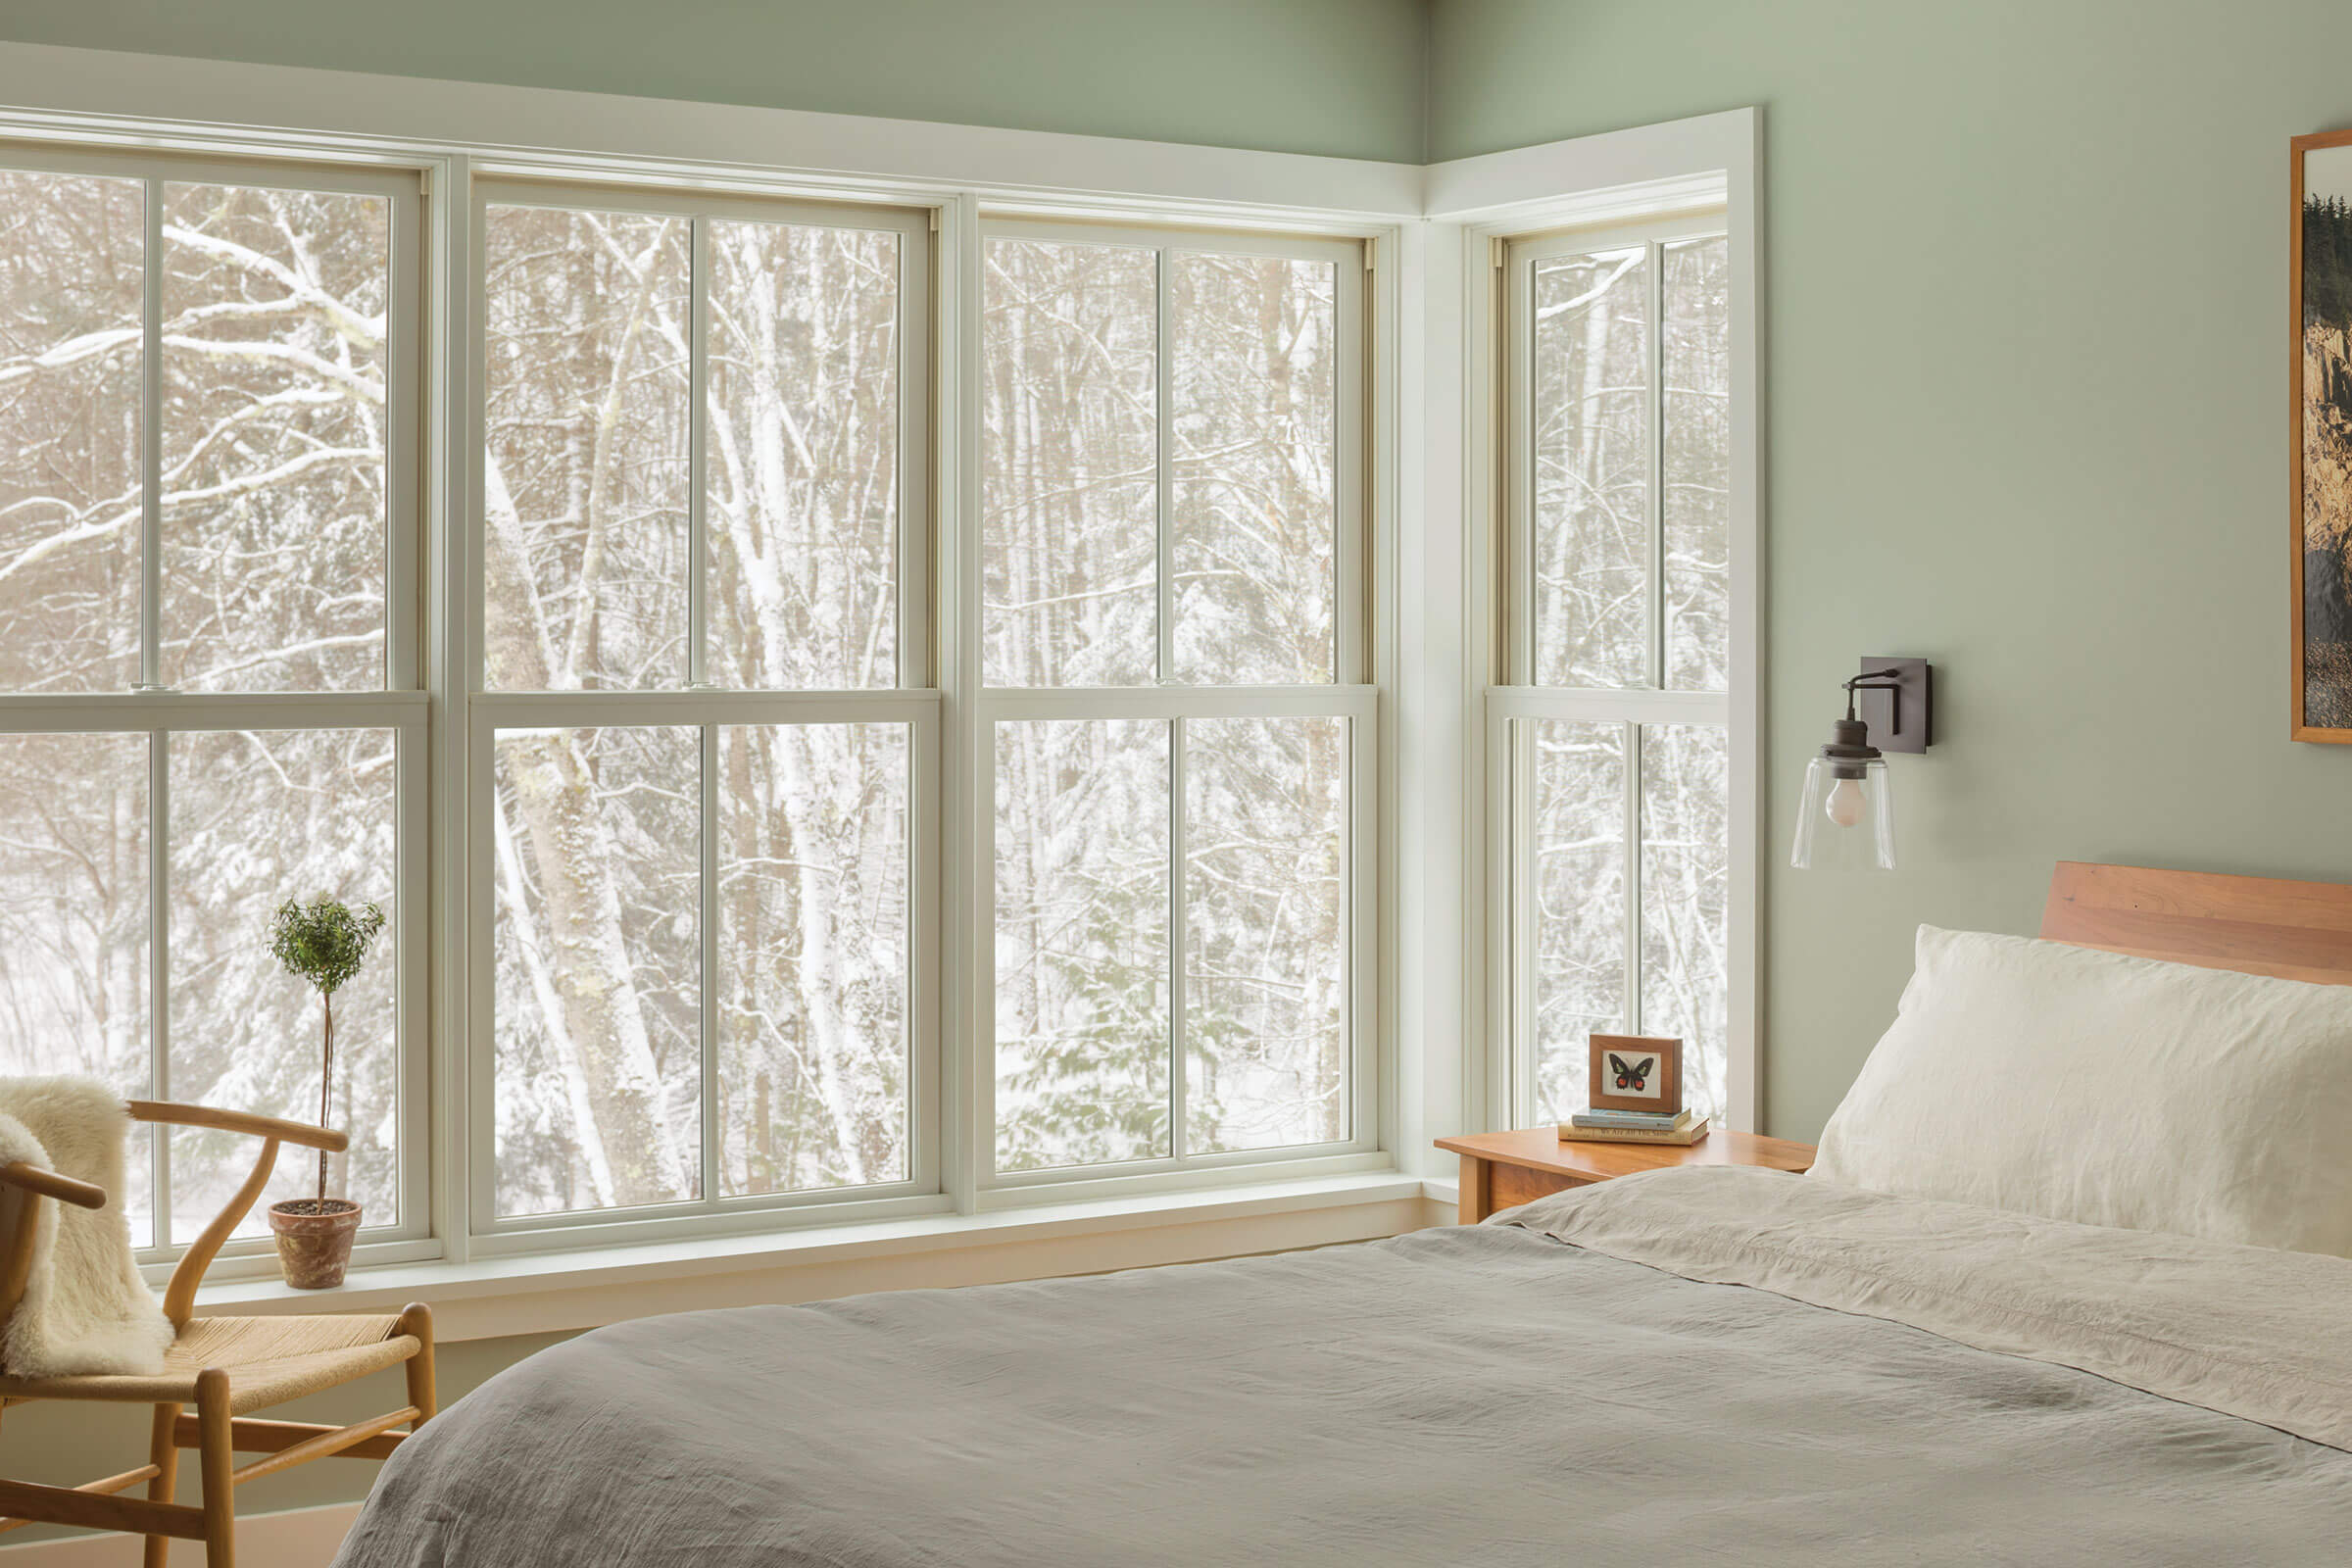 Bedroom With Elevate Double Hung Windows